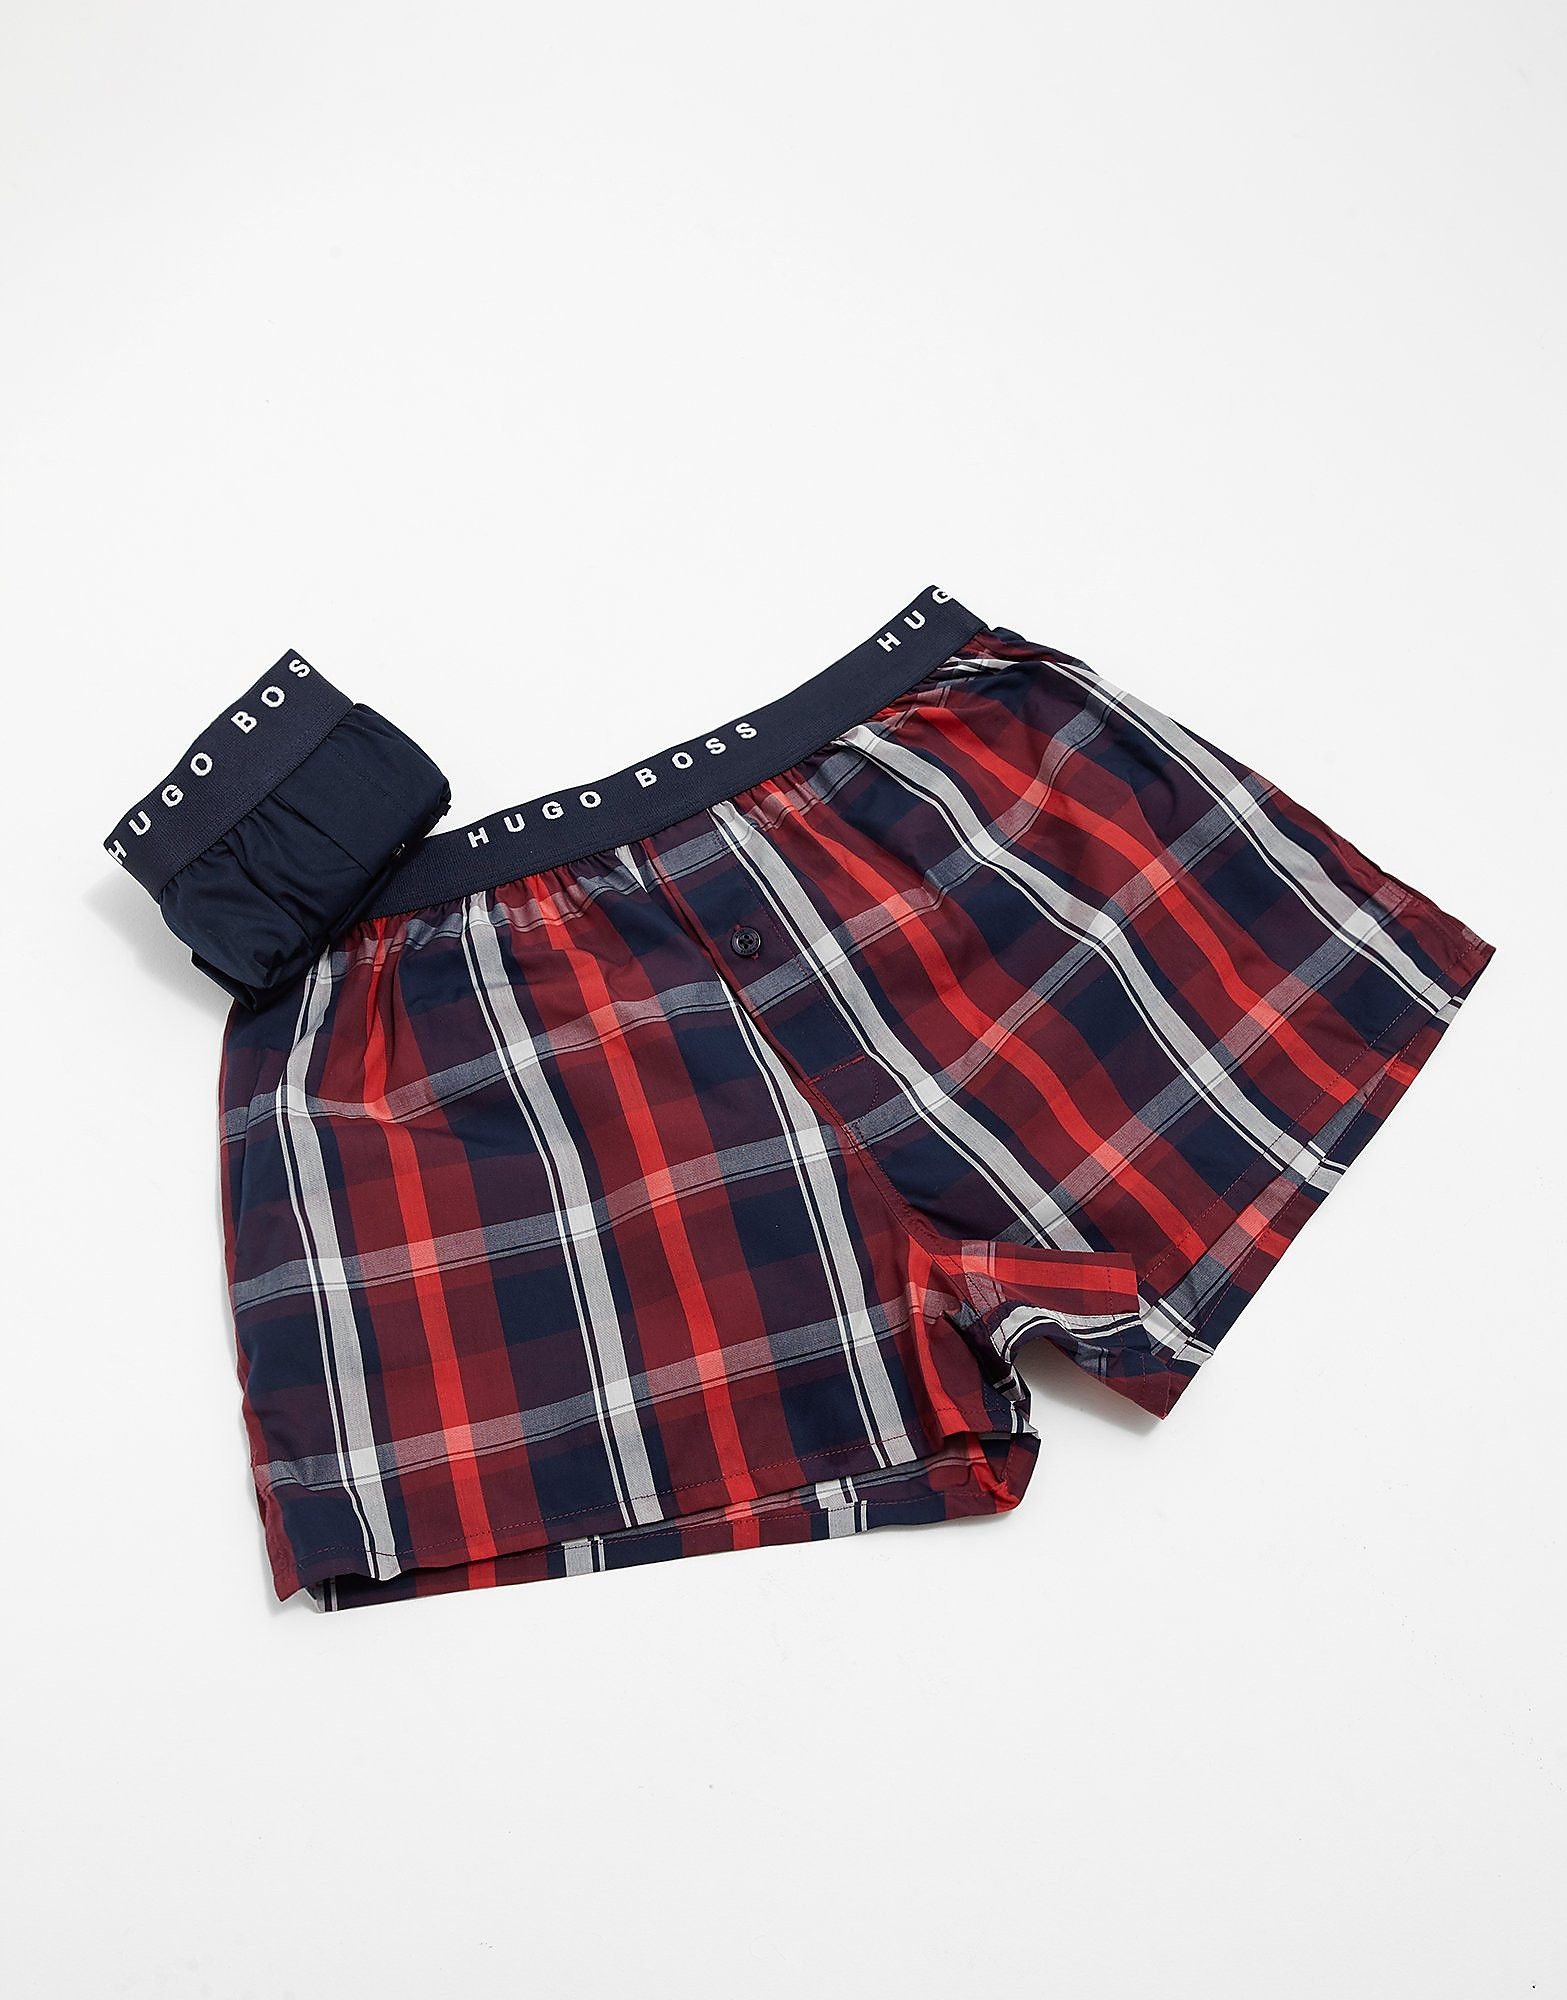 BOSS 2-Pack Woven Check Boxer Shorts